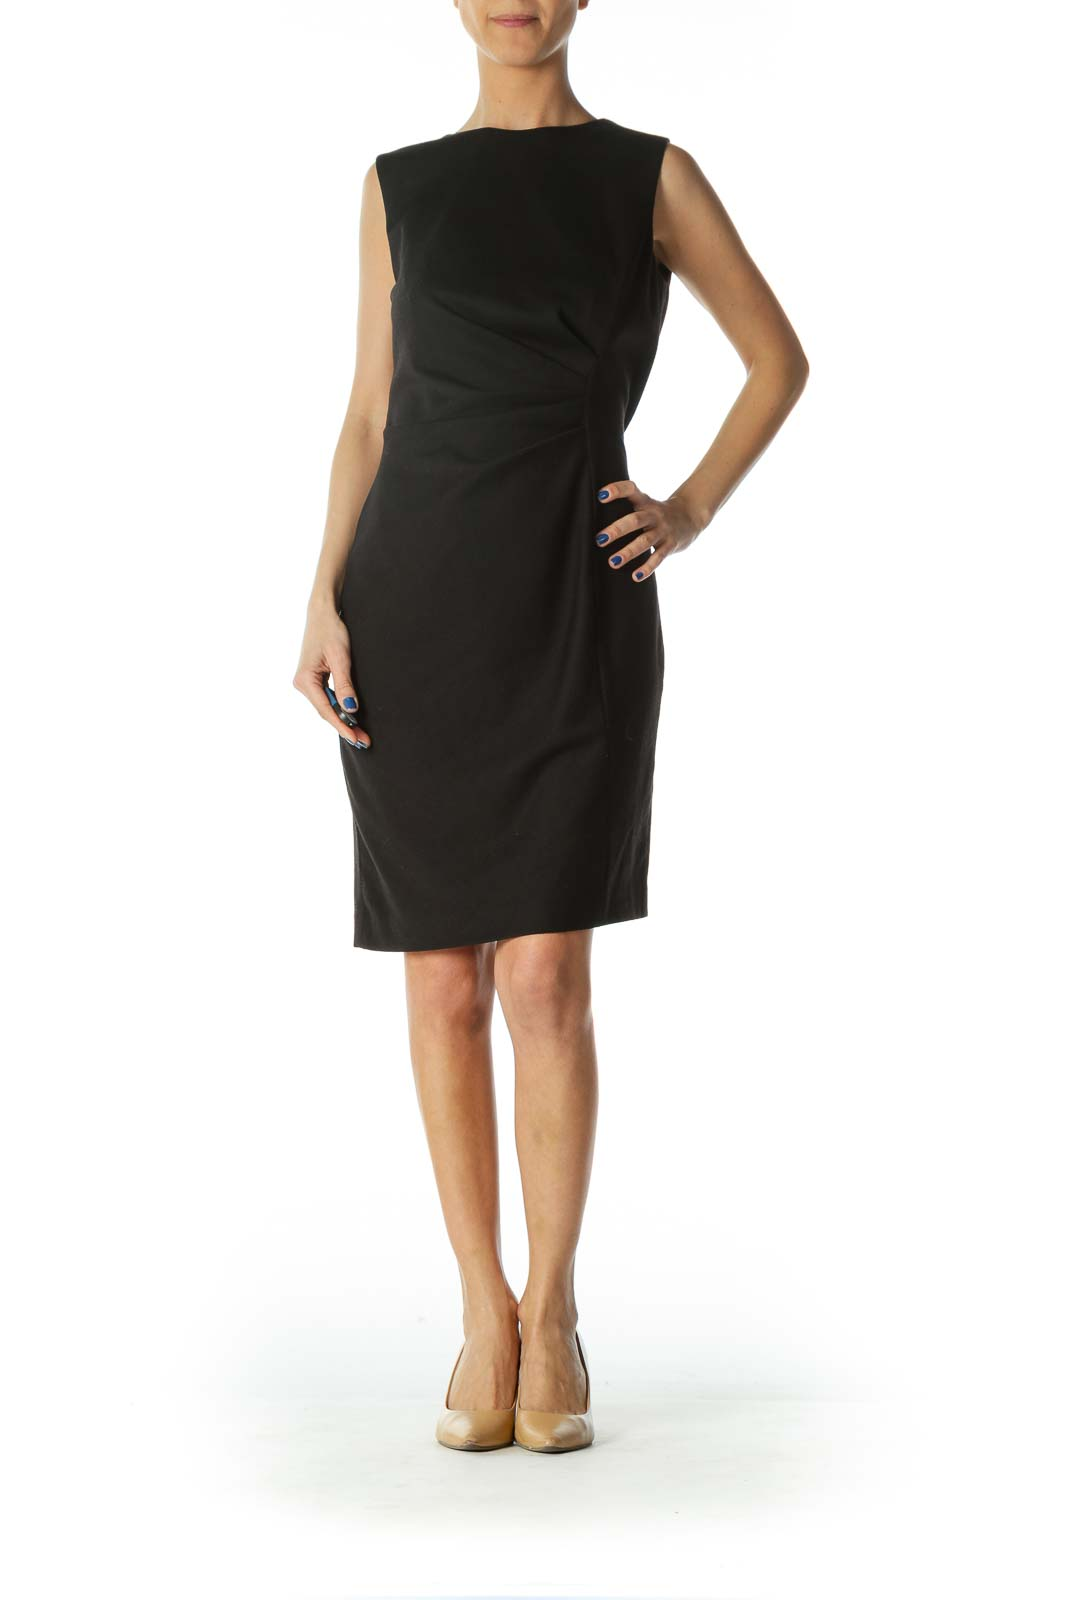 Black Sleeveless Work Dress